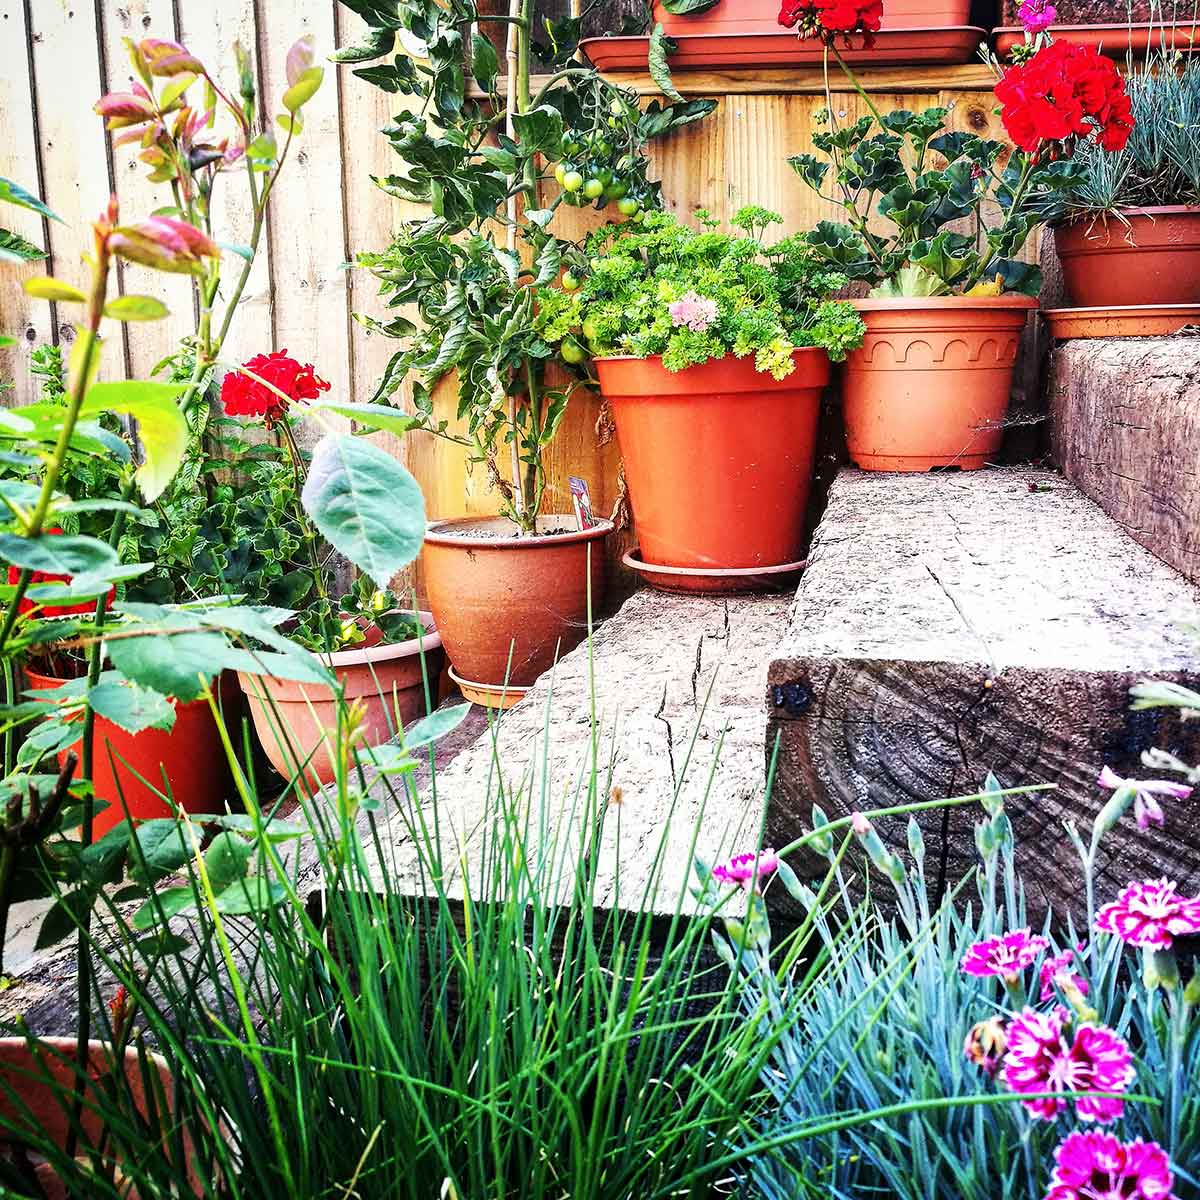 Wooden steps with flower pots arranged on them